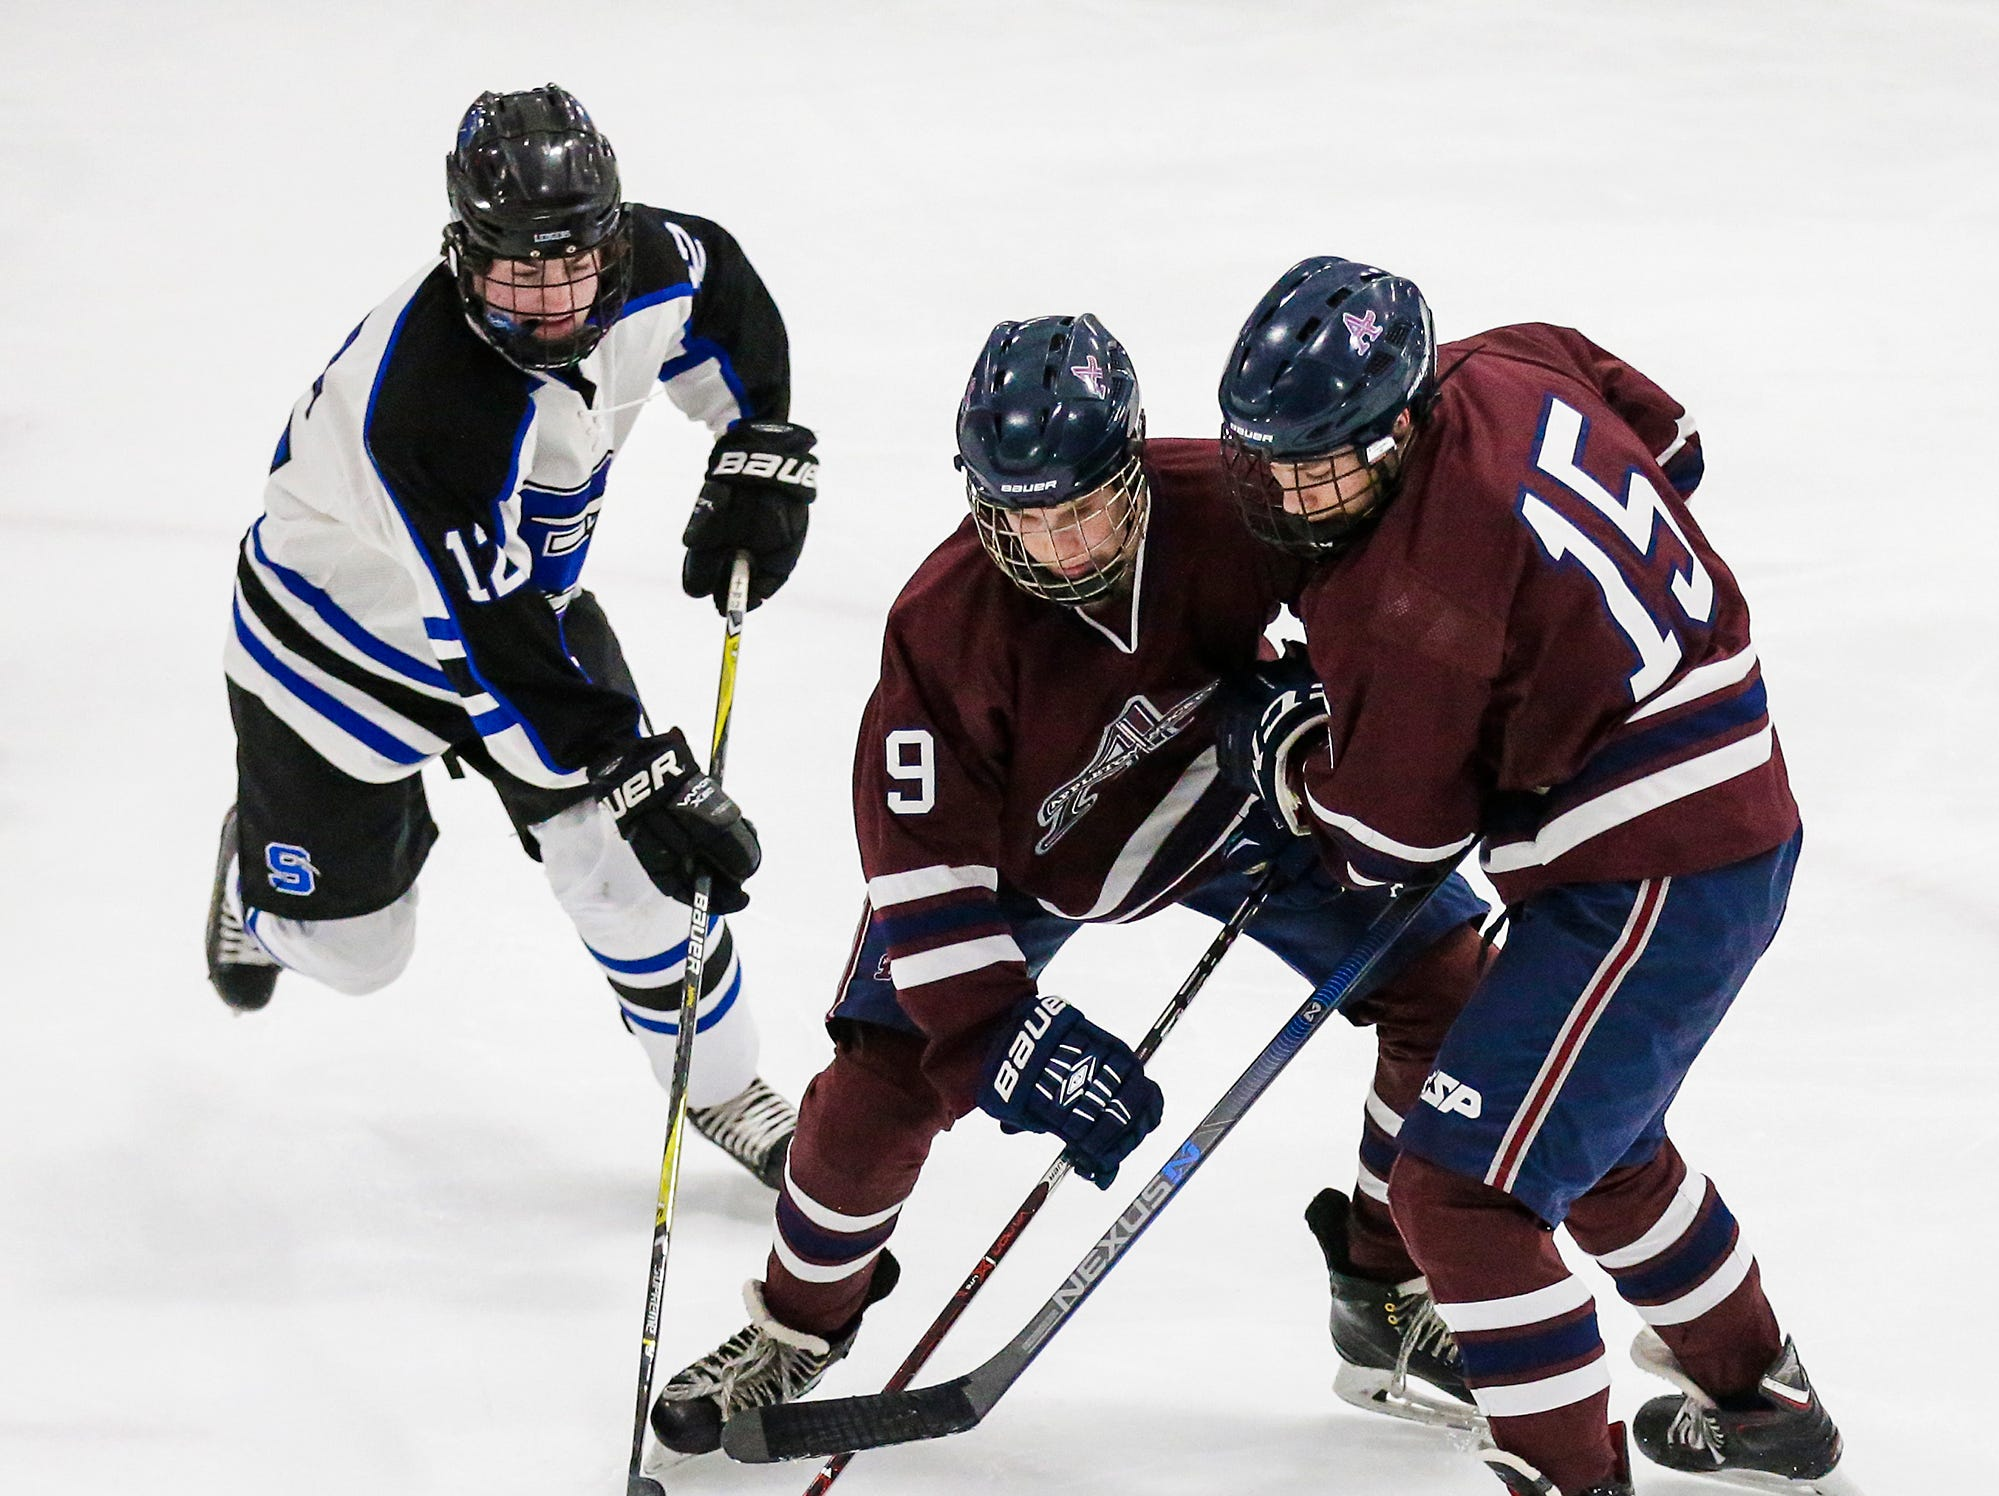 St. Mary's Springs Academy co-op hockey's Mitchell Huettl tries to get the puck from Appleton United's Jack Moeller (9) and Brenden Ryan (15) during their game Thursday, November 29, 2018 played in Fond du Lac. Springs won the game 8-1. Doug Raflik/USA TODAY NETWORK-Wisconsin